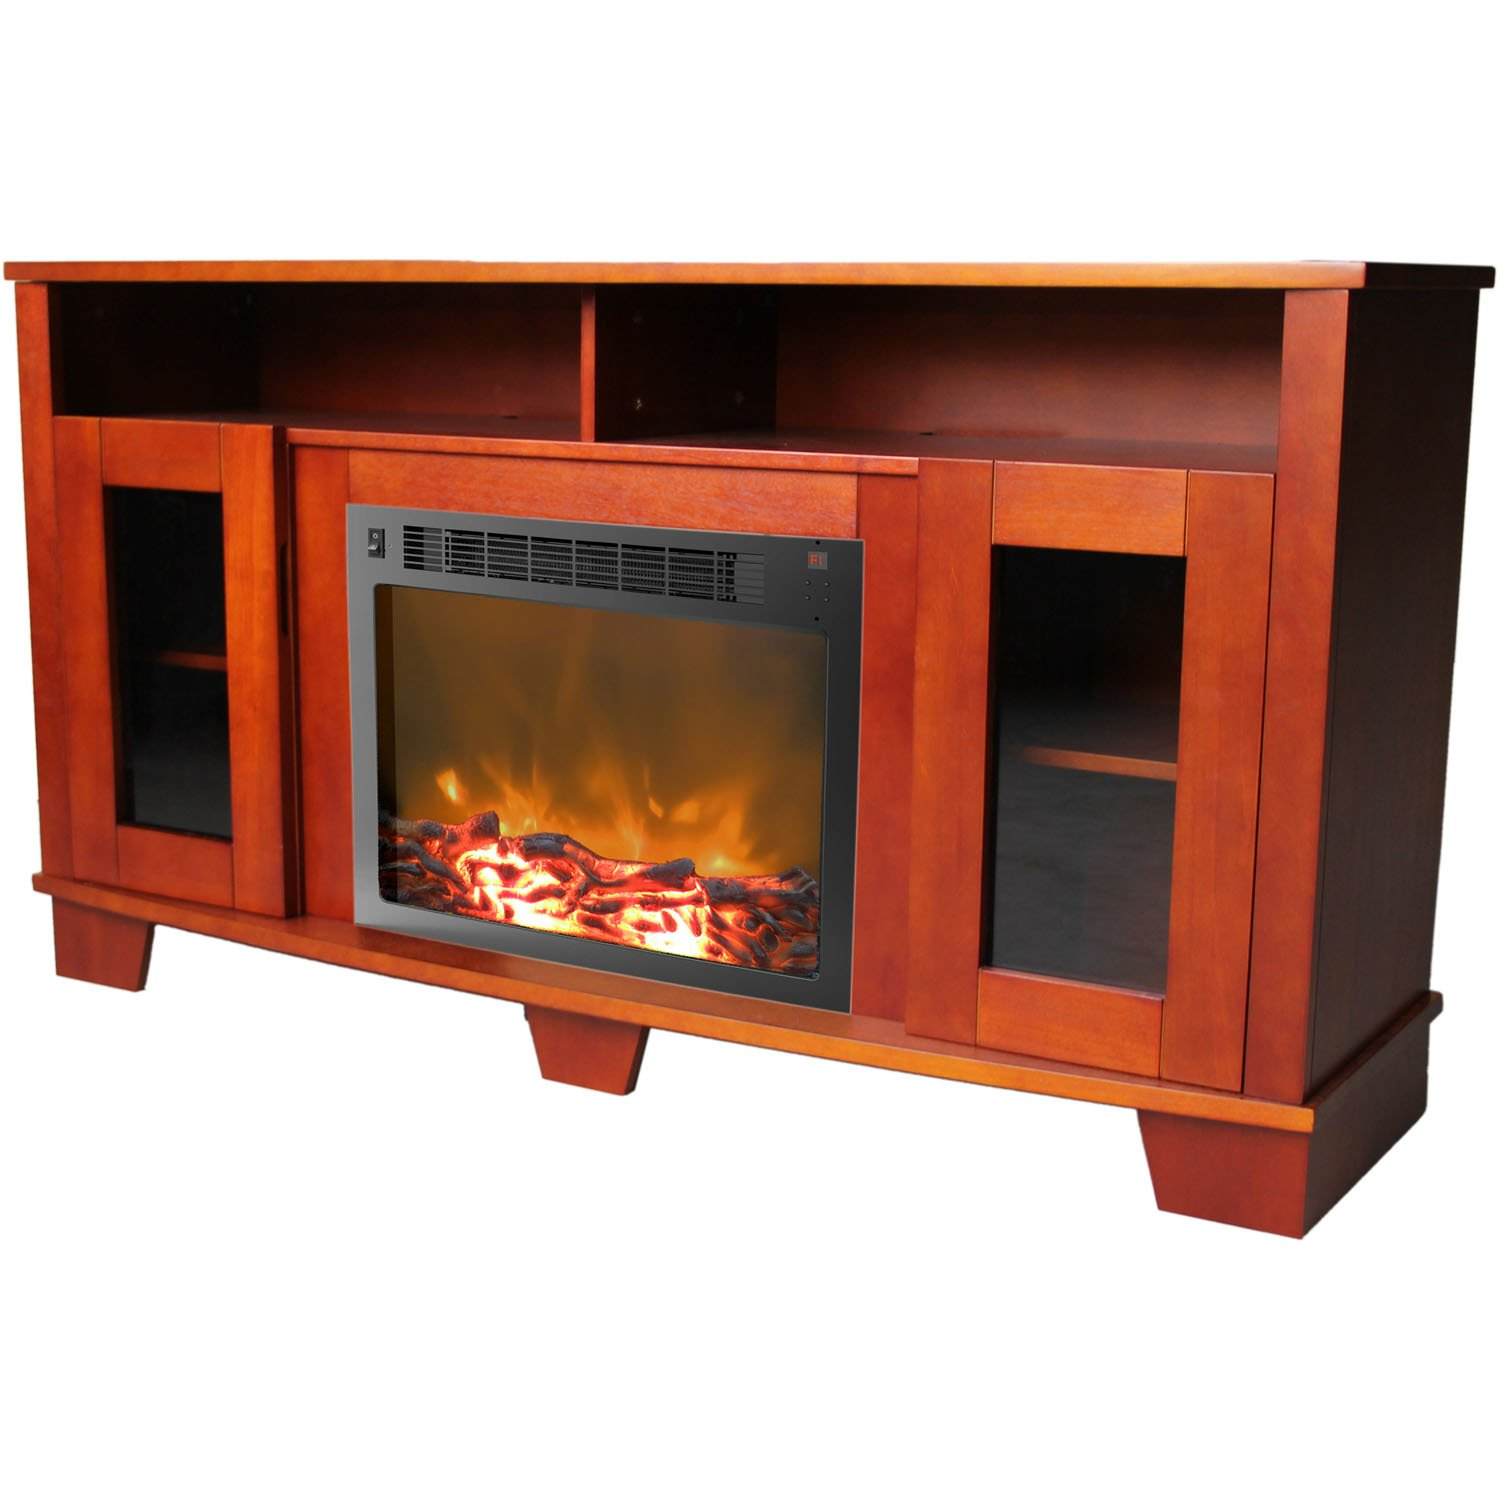 Cheap legends furniture cambridge fireplace media center in cherry - Amazon Com Cambridge Savona Fireplace Mantel With Electronic Fireplace Insert White Home Kitchen